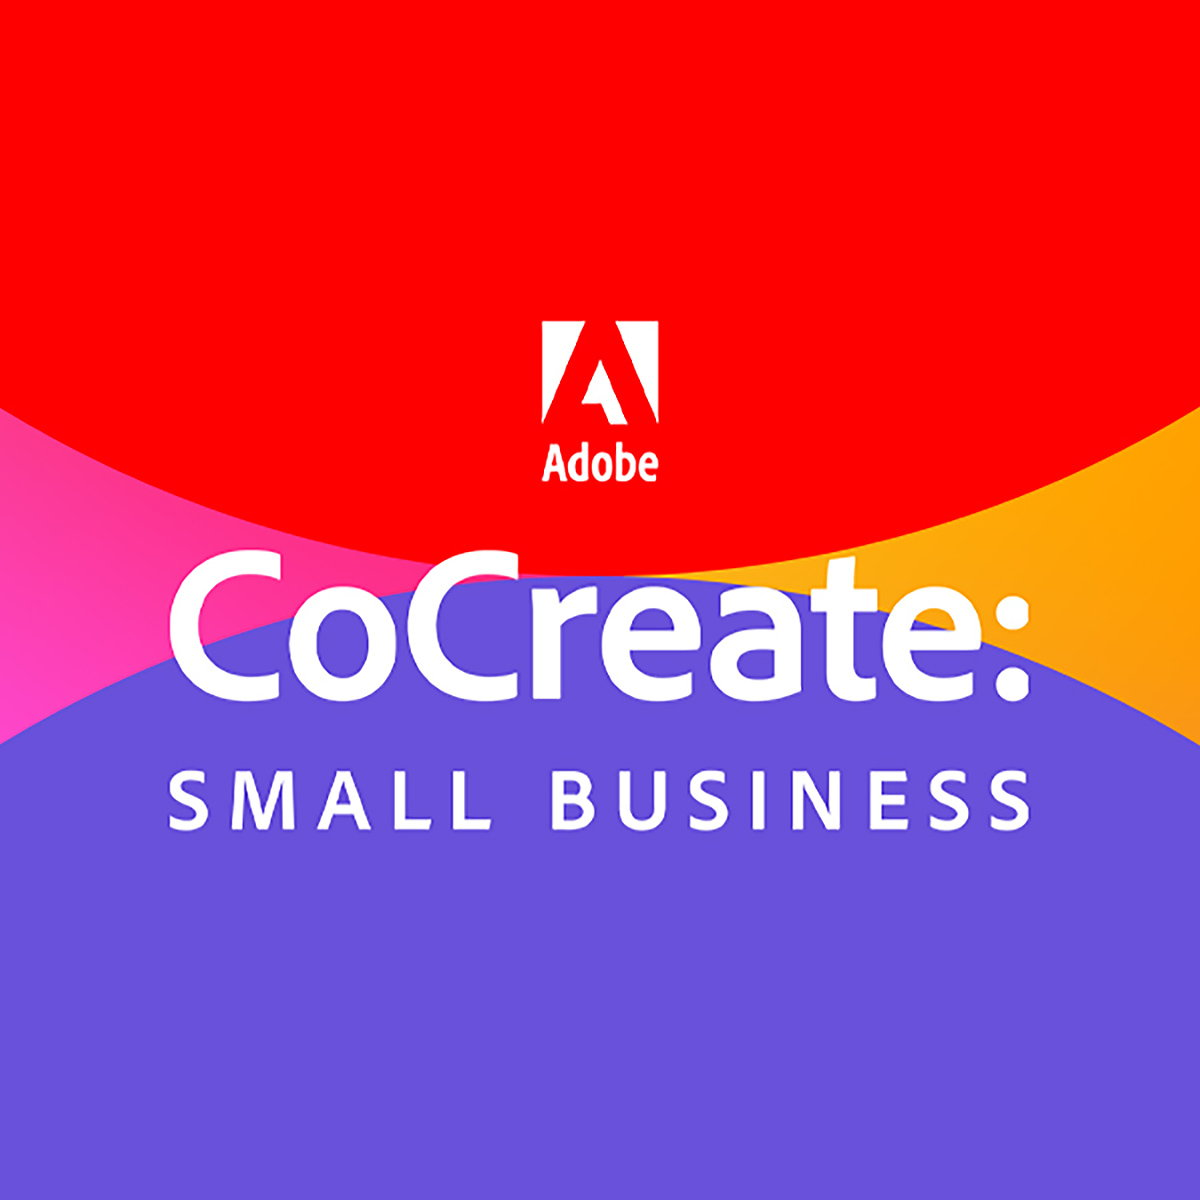 Adobe Launches CoCreate: Small Business